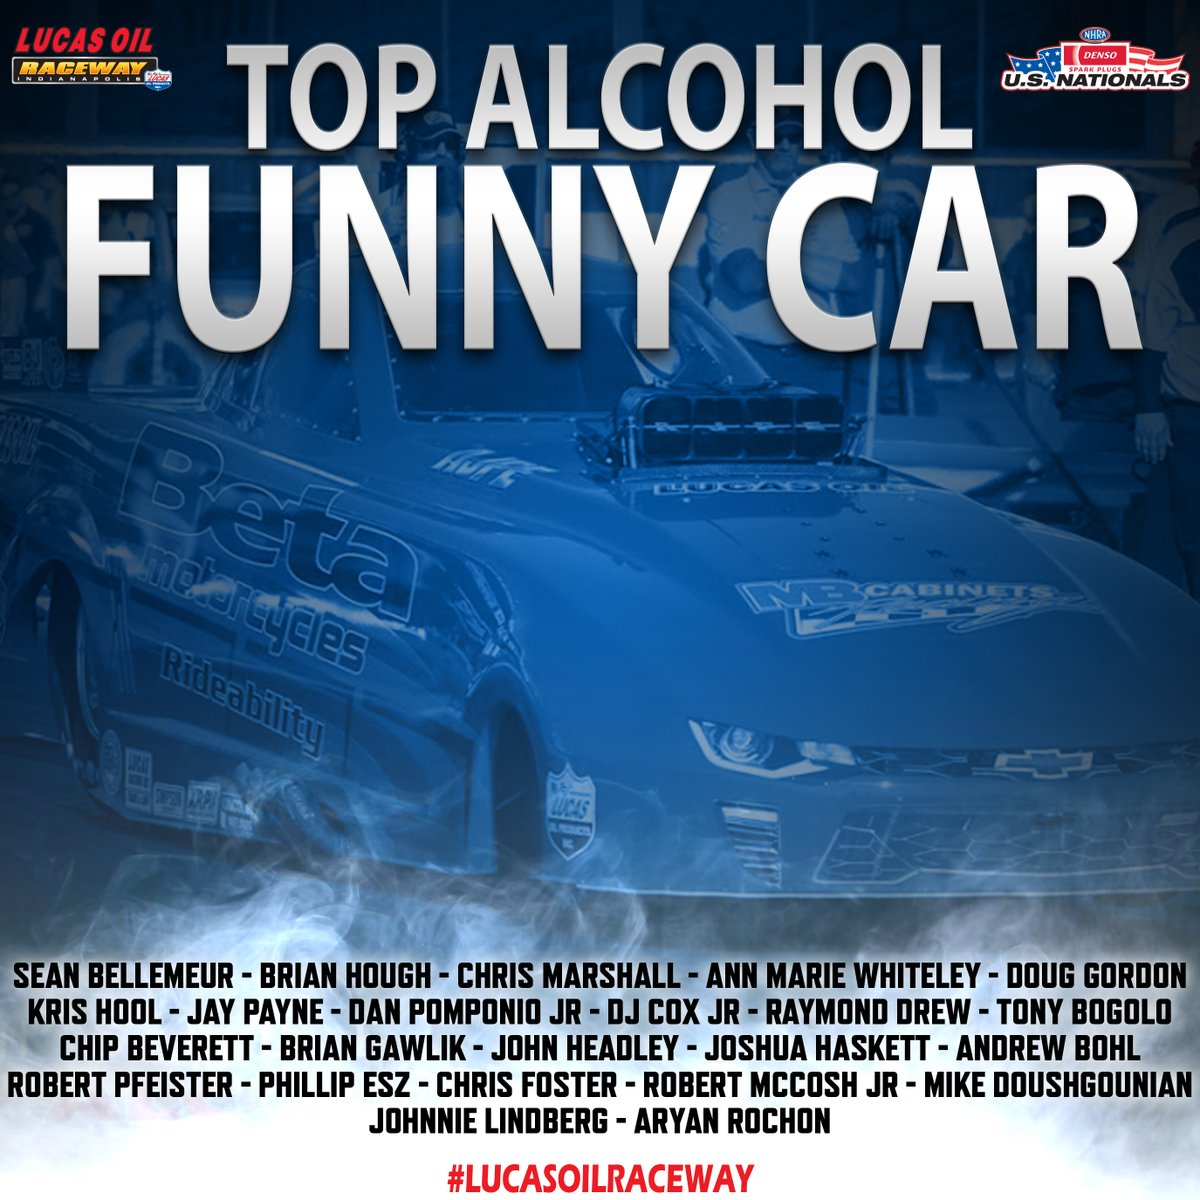 That's right, there are 23 entries in the Top Alcohol Funny Car field at the @DENSOAutoParts @NHRA #USnats this weekend!  @seantafc @disturbedRTeam @tafc562 @PomponioRacing @RayDrewRacing33 @JonnieLindberg https://t.co/PLmrVxbW6v